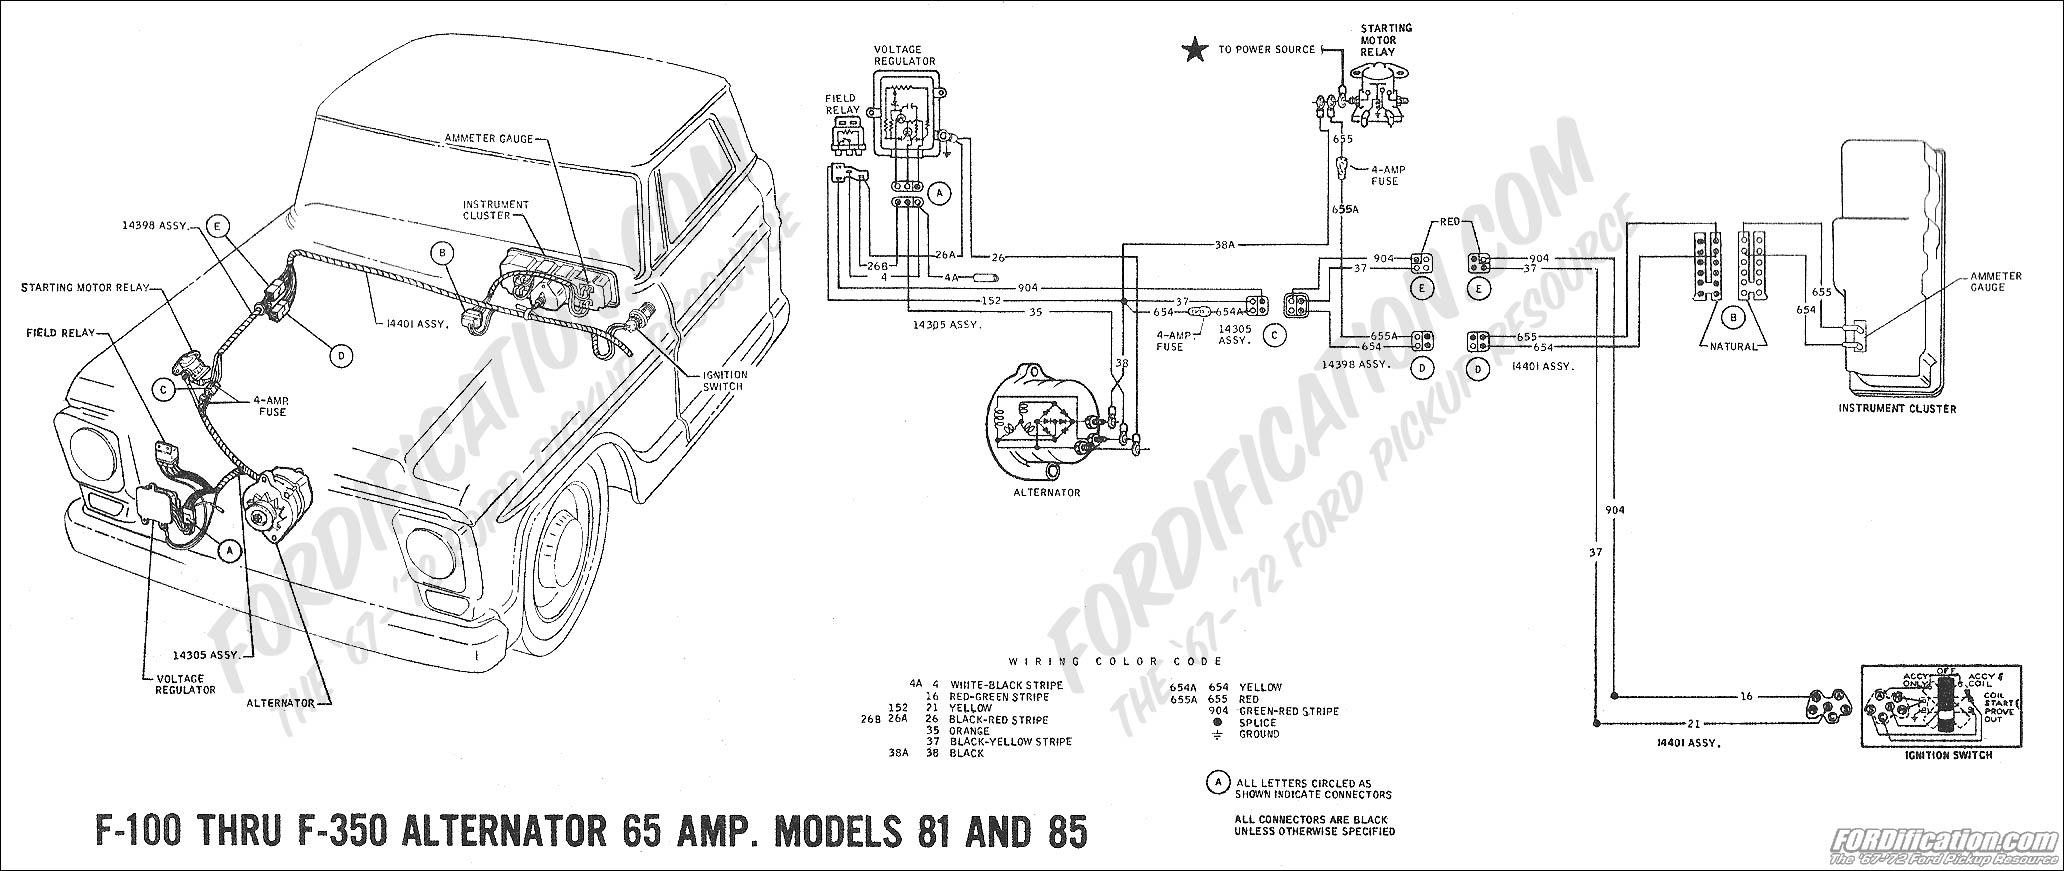 Charging System Wiring Diagram 1976 Ford F250, Charging